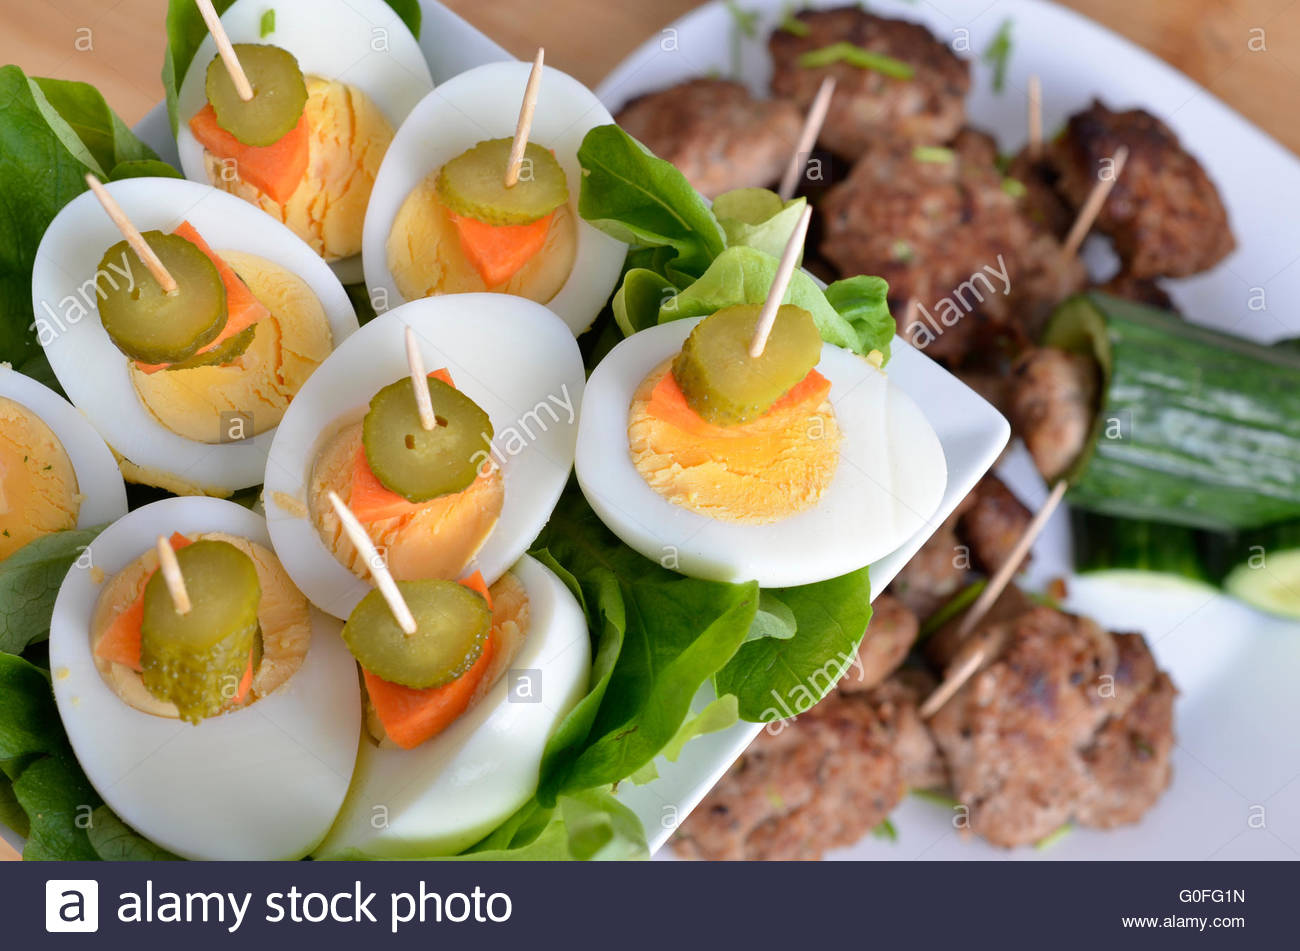 eggs for buffet - Stock Image